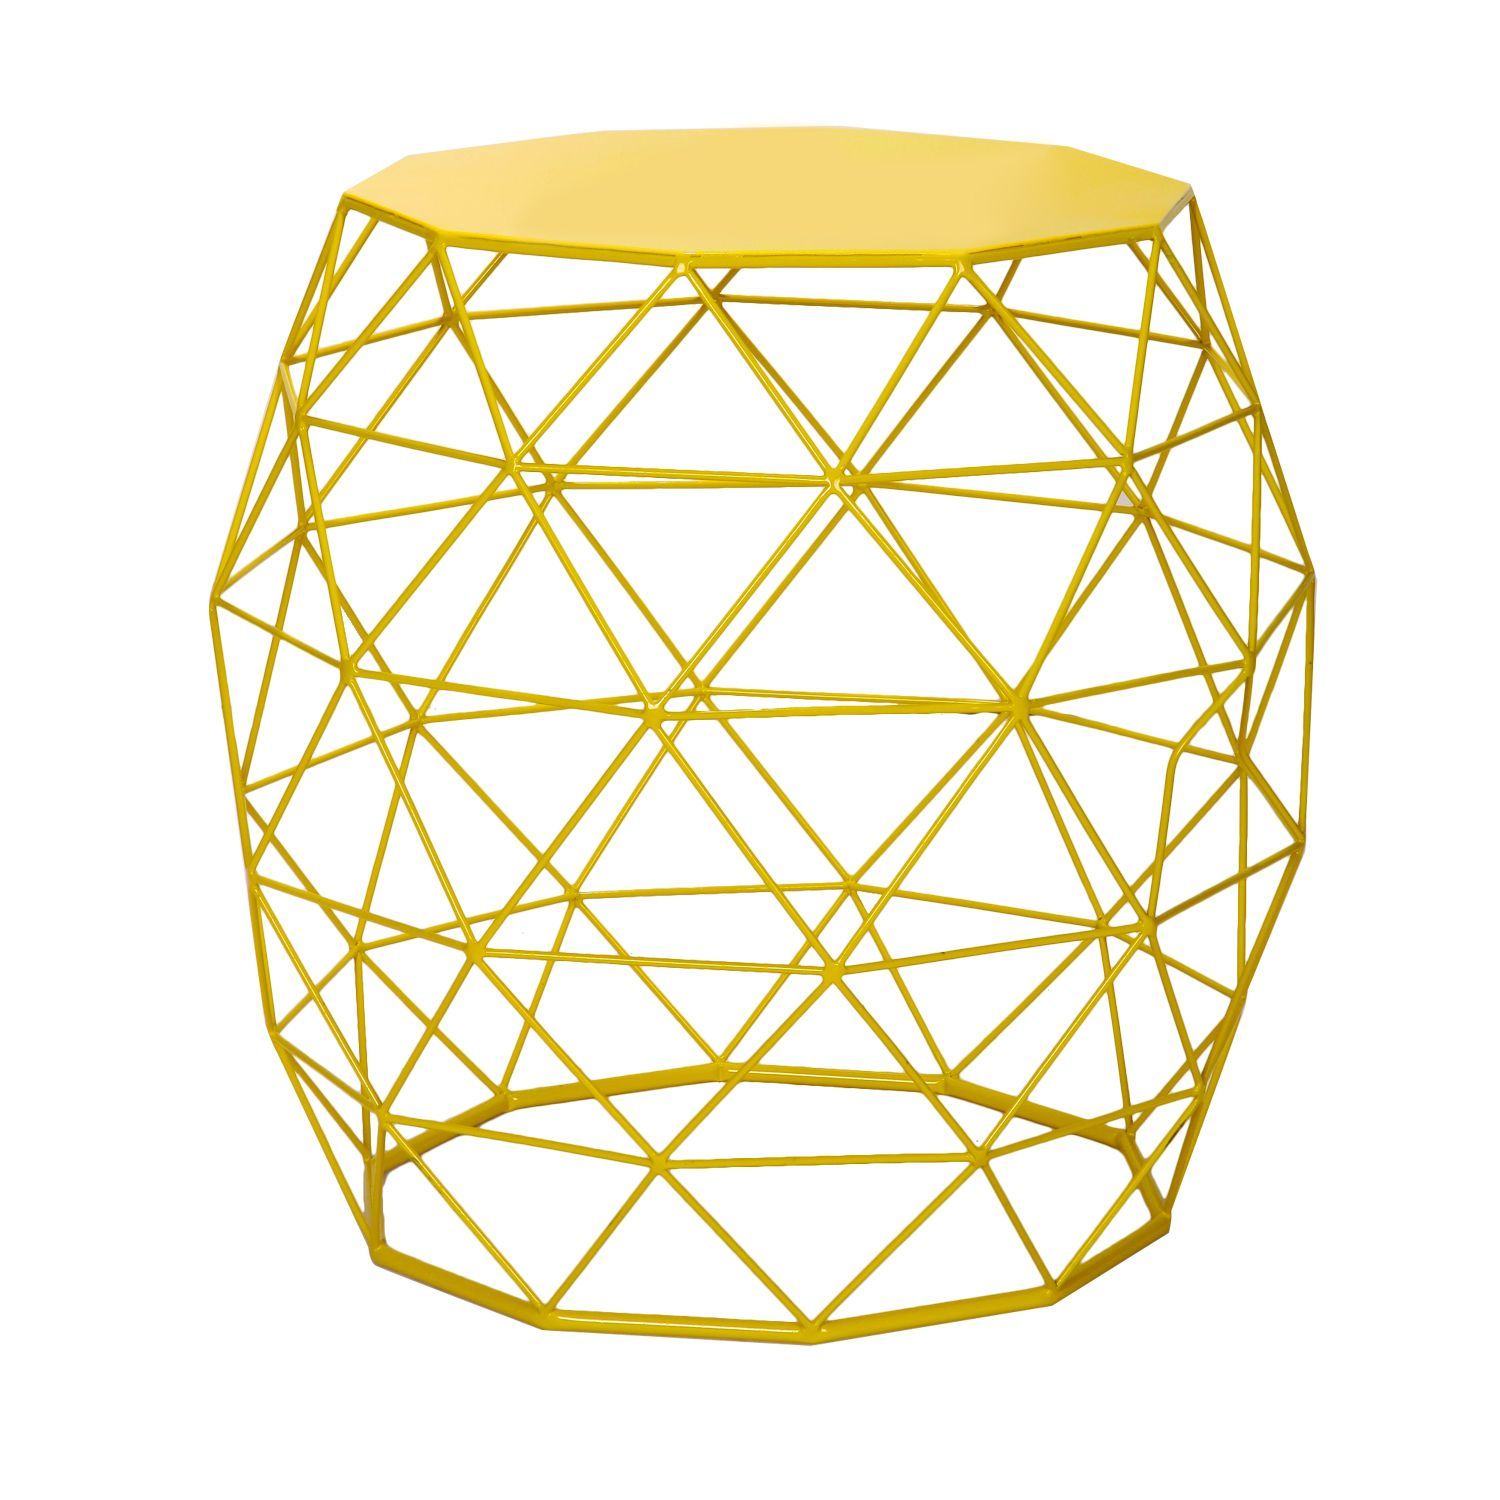 Adeco home garden accents hatched diamond pattern wire round iron adeco home garden accents hatched diamond pattern wire round iron stool table yellow greentooth Choice Image